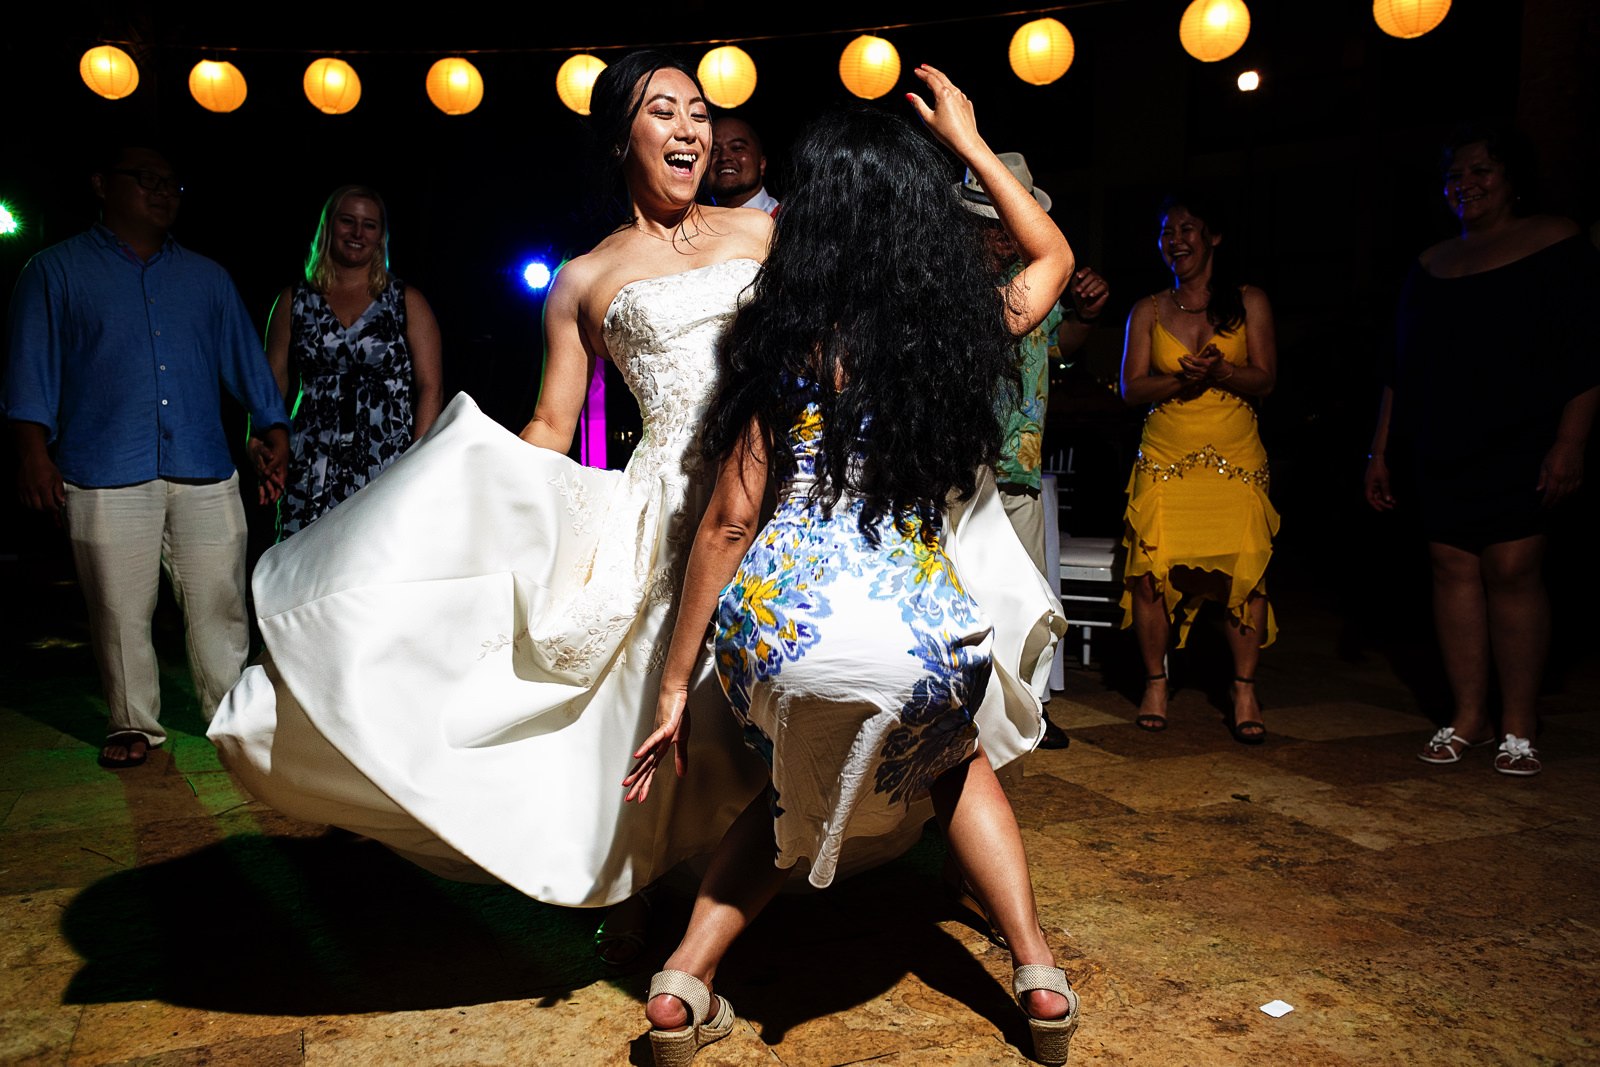 Bride dancing with a wedding guest